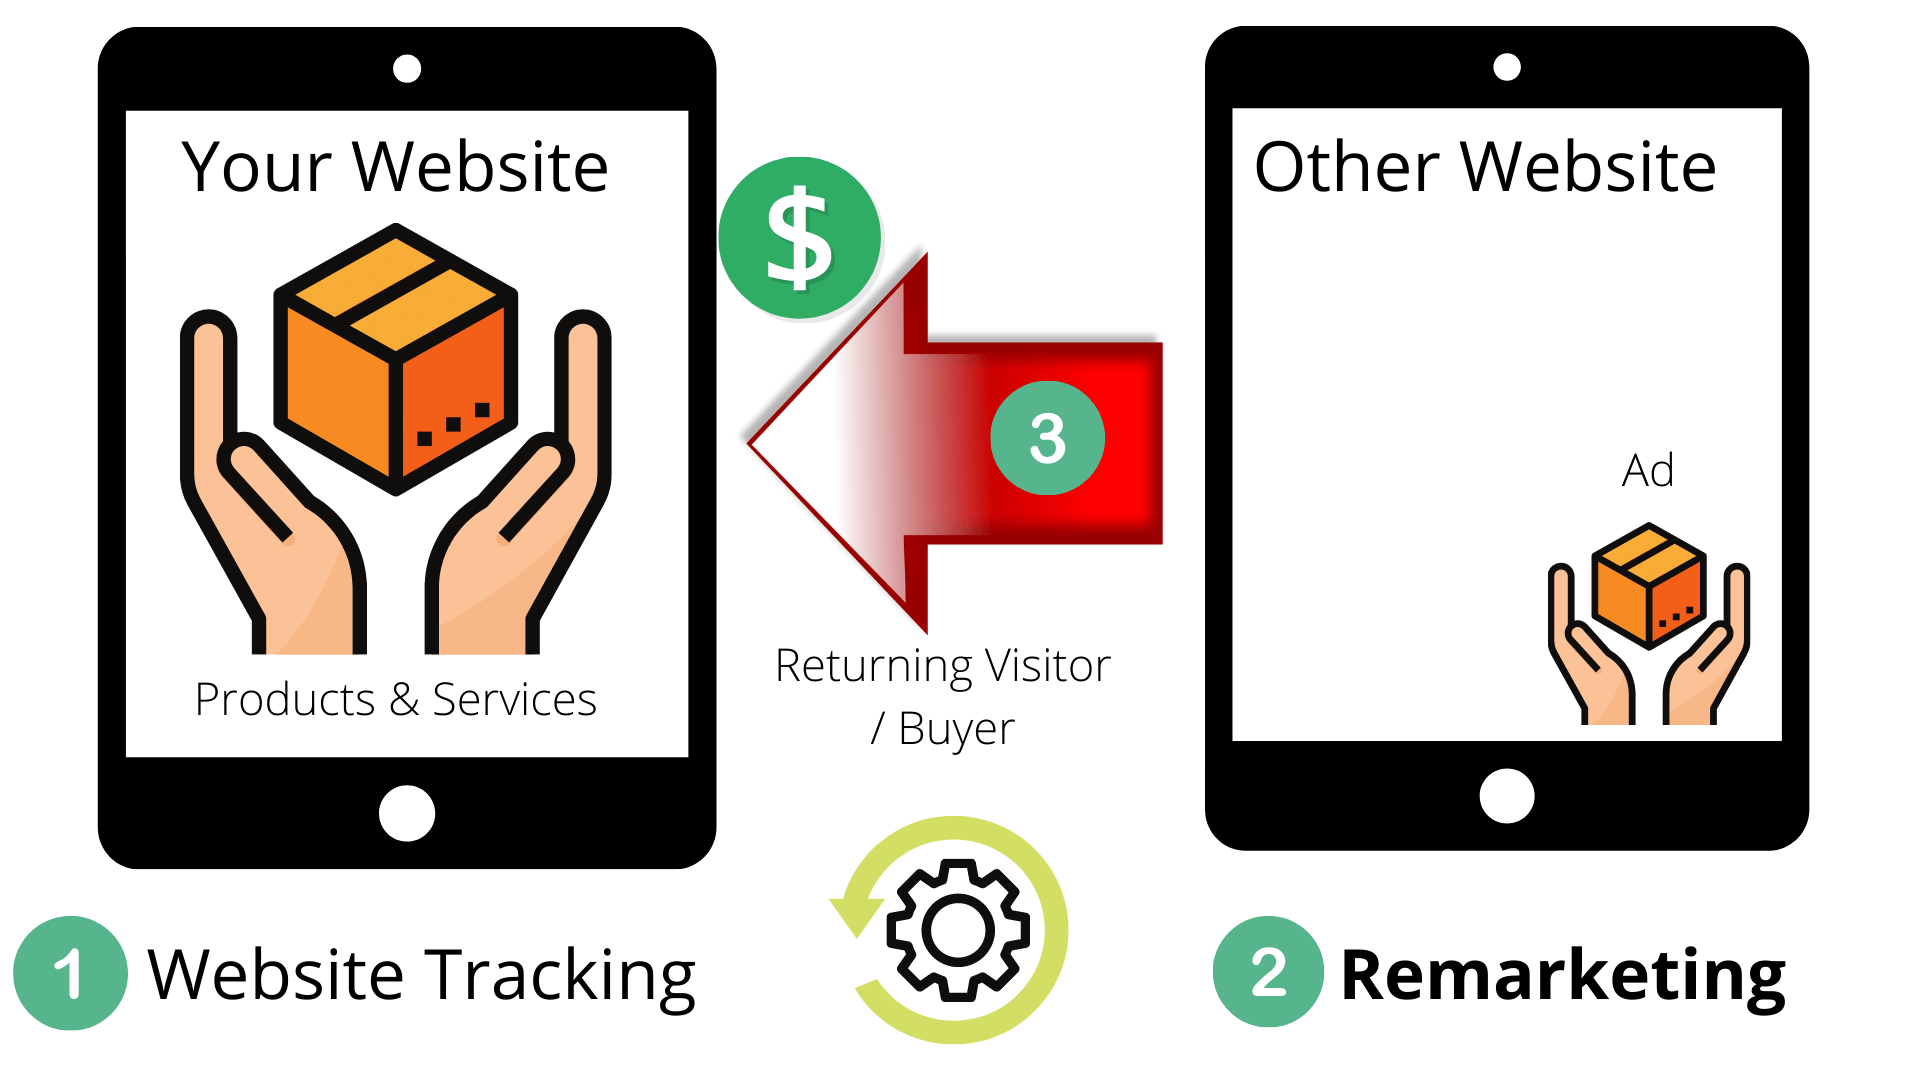 Remarketing FAQ for website owners to build trust and engagement